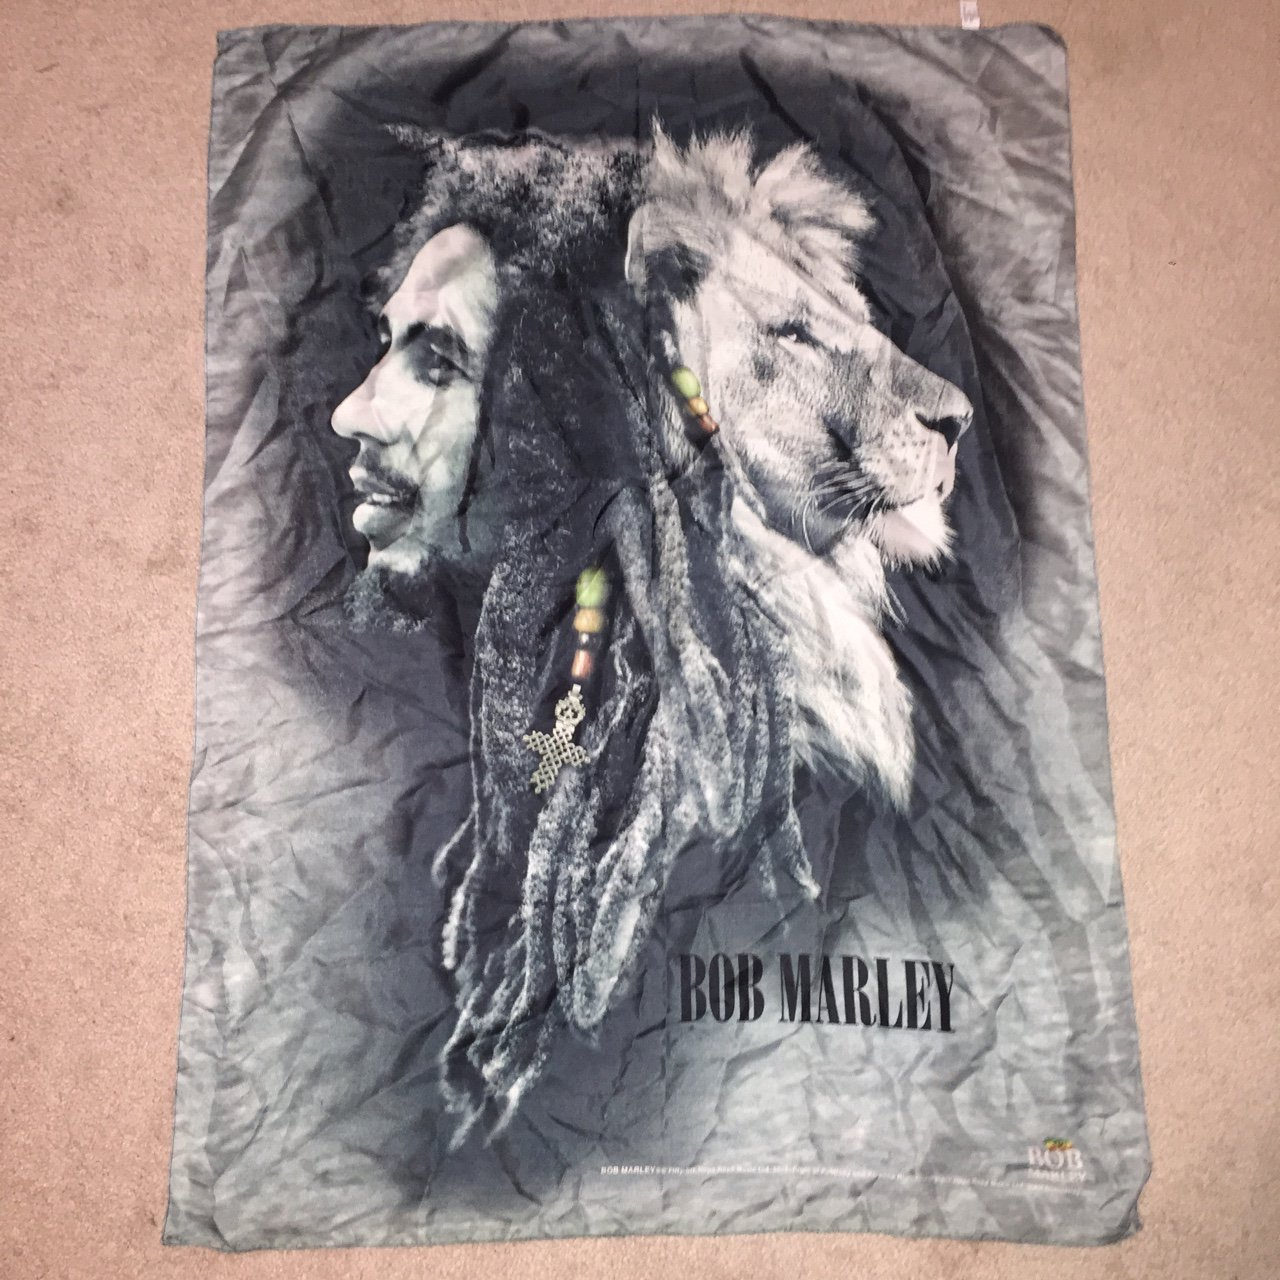 Beautiful Bob Marley Lion Cloth Poster Great For Any Music Depop